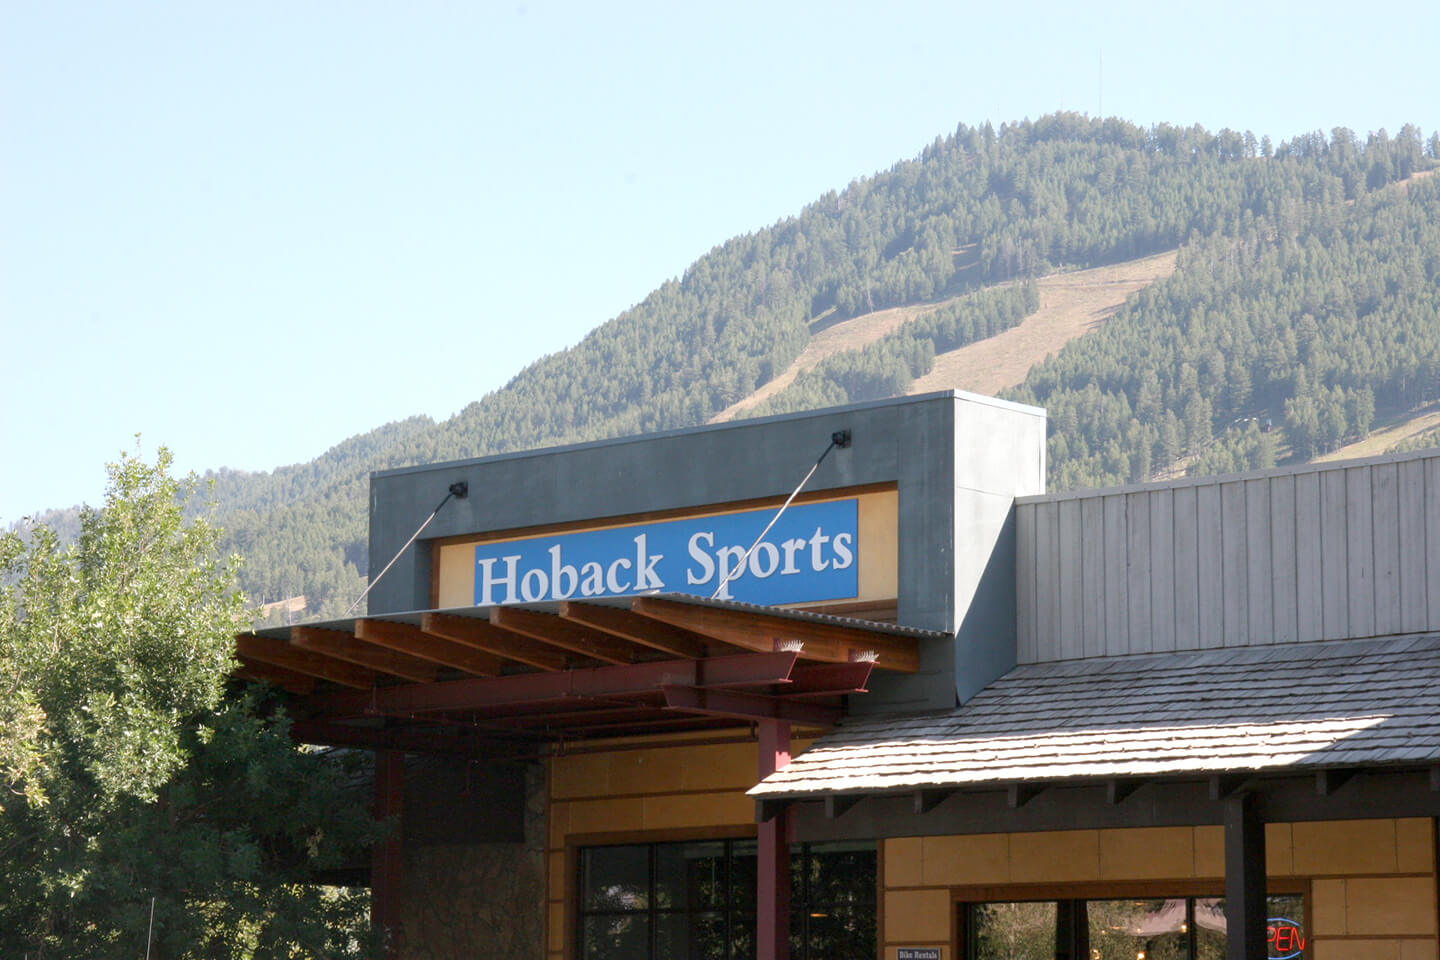 Hoback Store front awning with signage